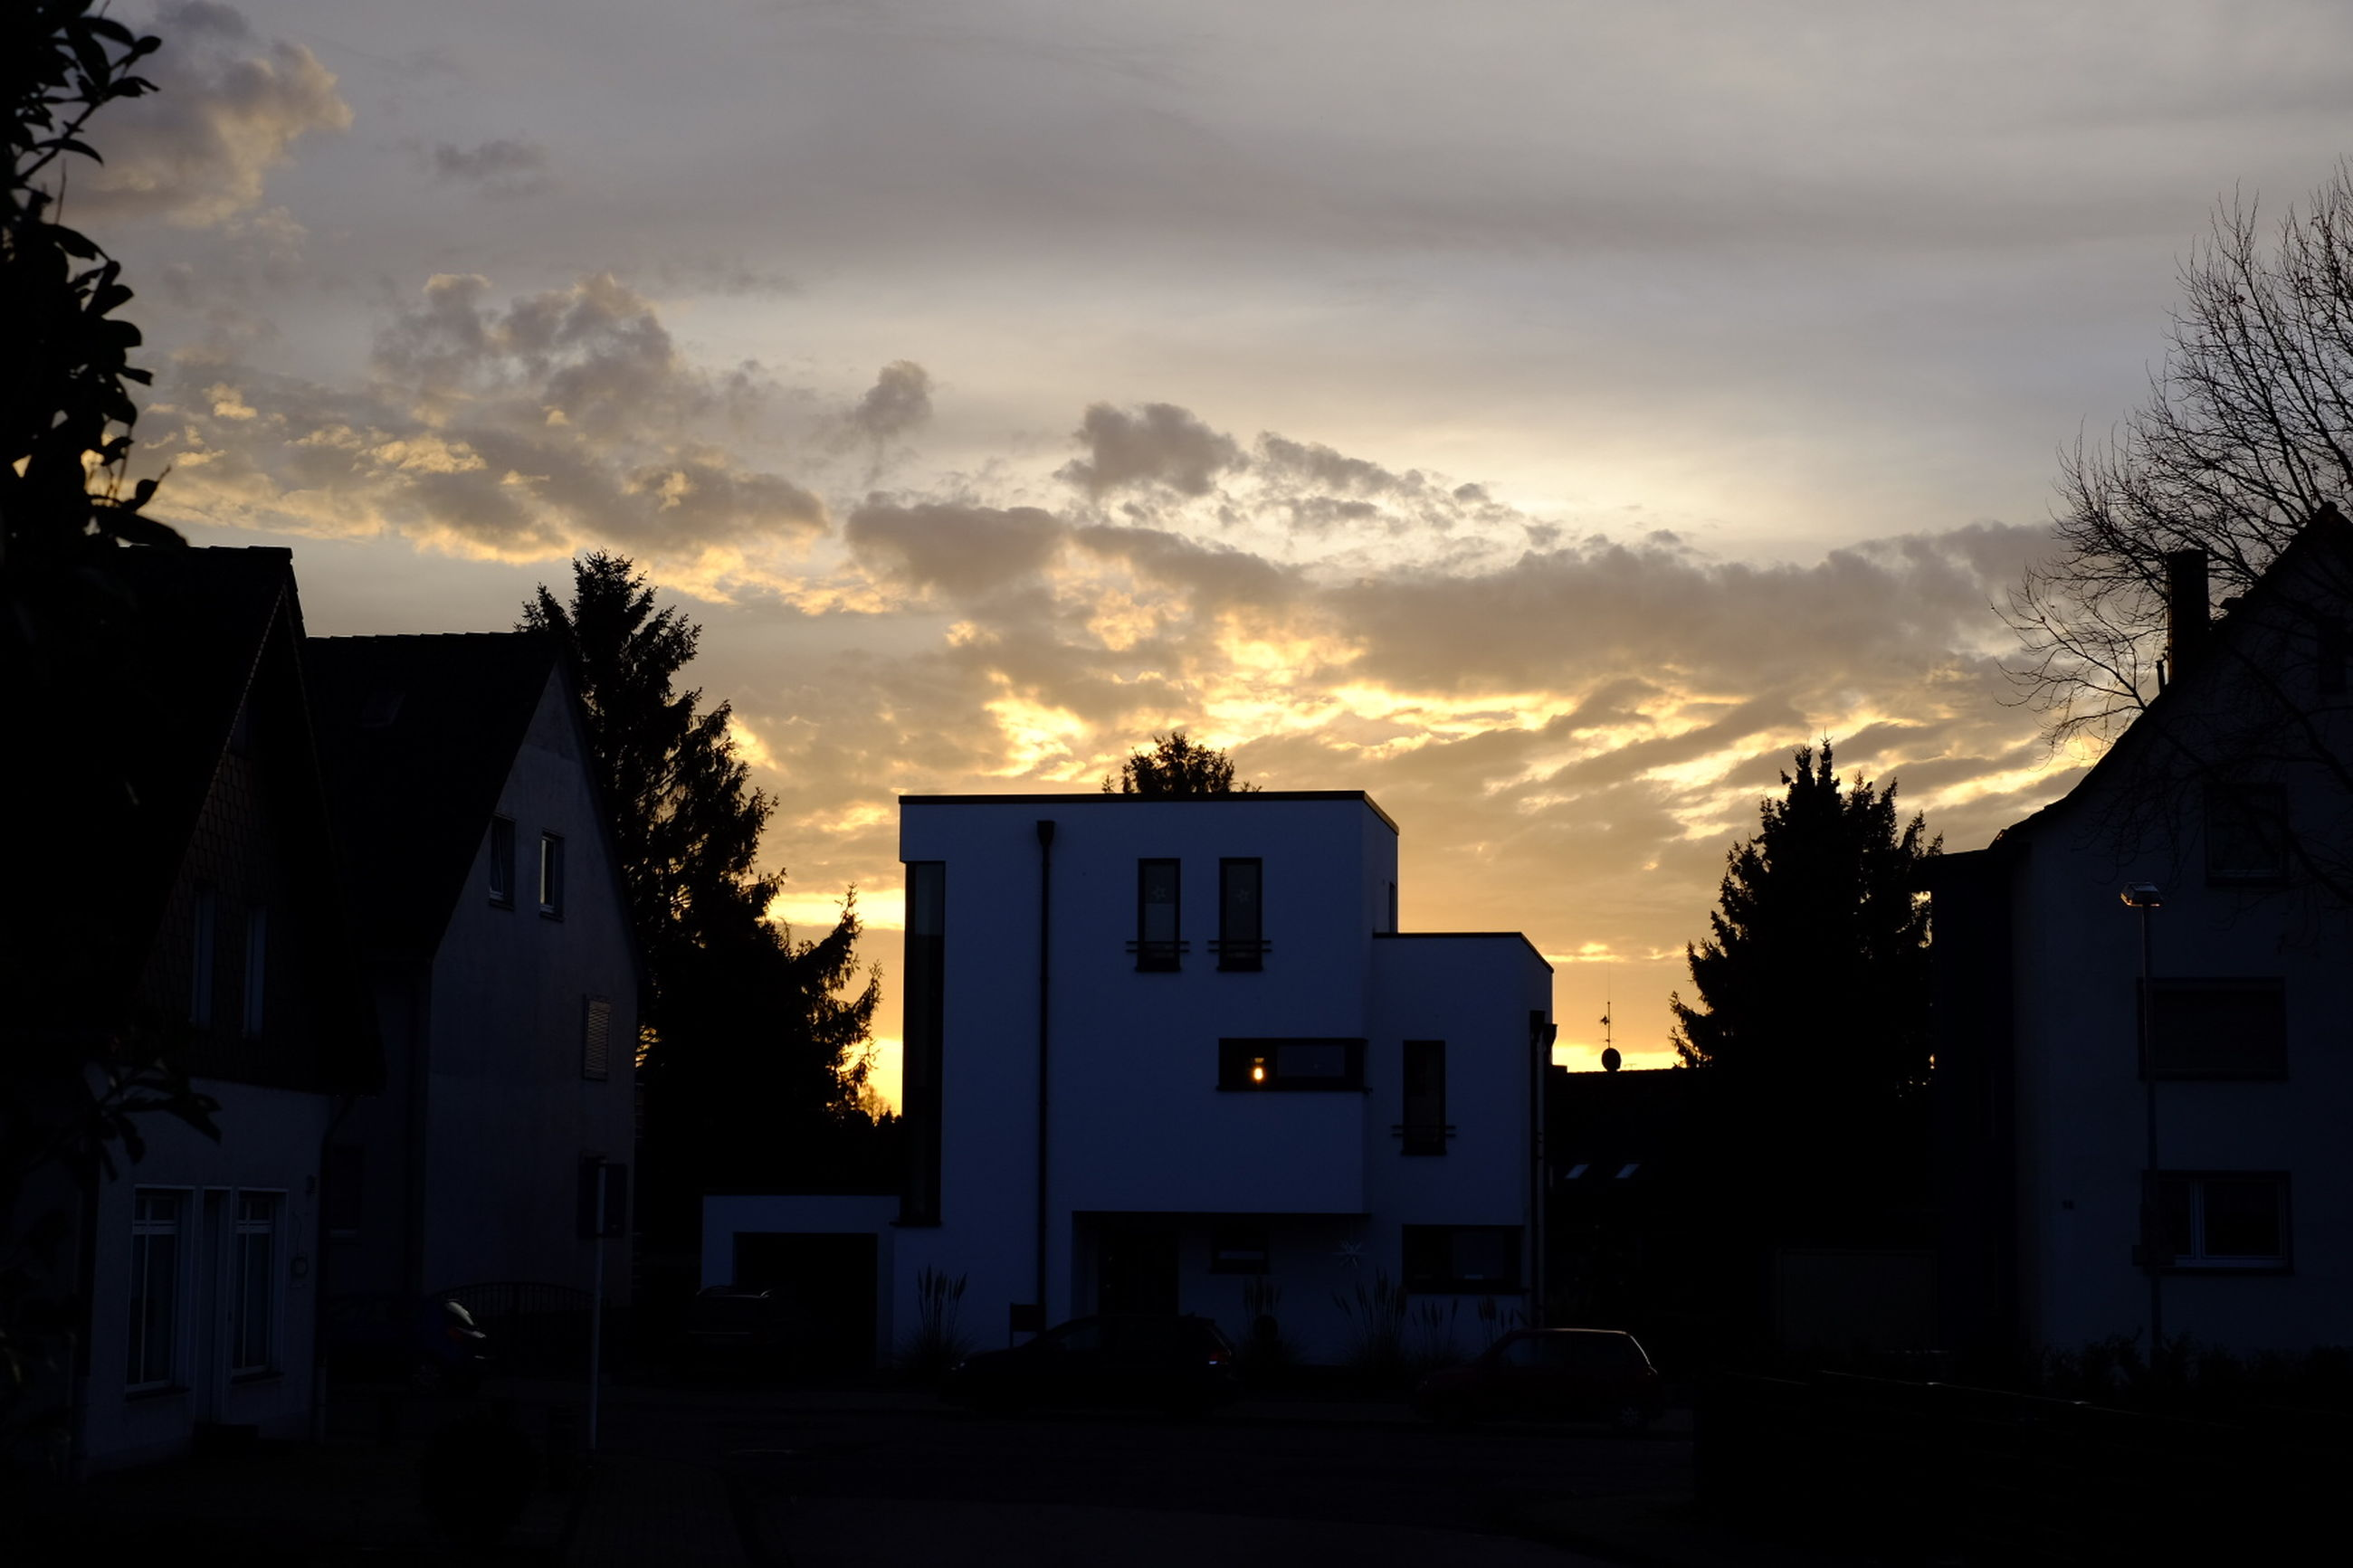 building exterior, sunset, architecture, built structure, silhouette, sky, cloud - sky, house, residential structure, residential building, cloud, tree, building, dusk, low angle view, cloudy, city, orange color, outdoors, dark